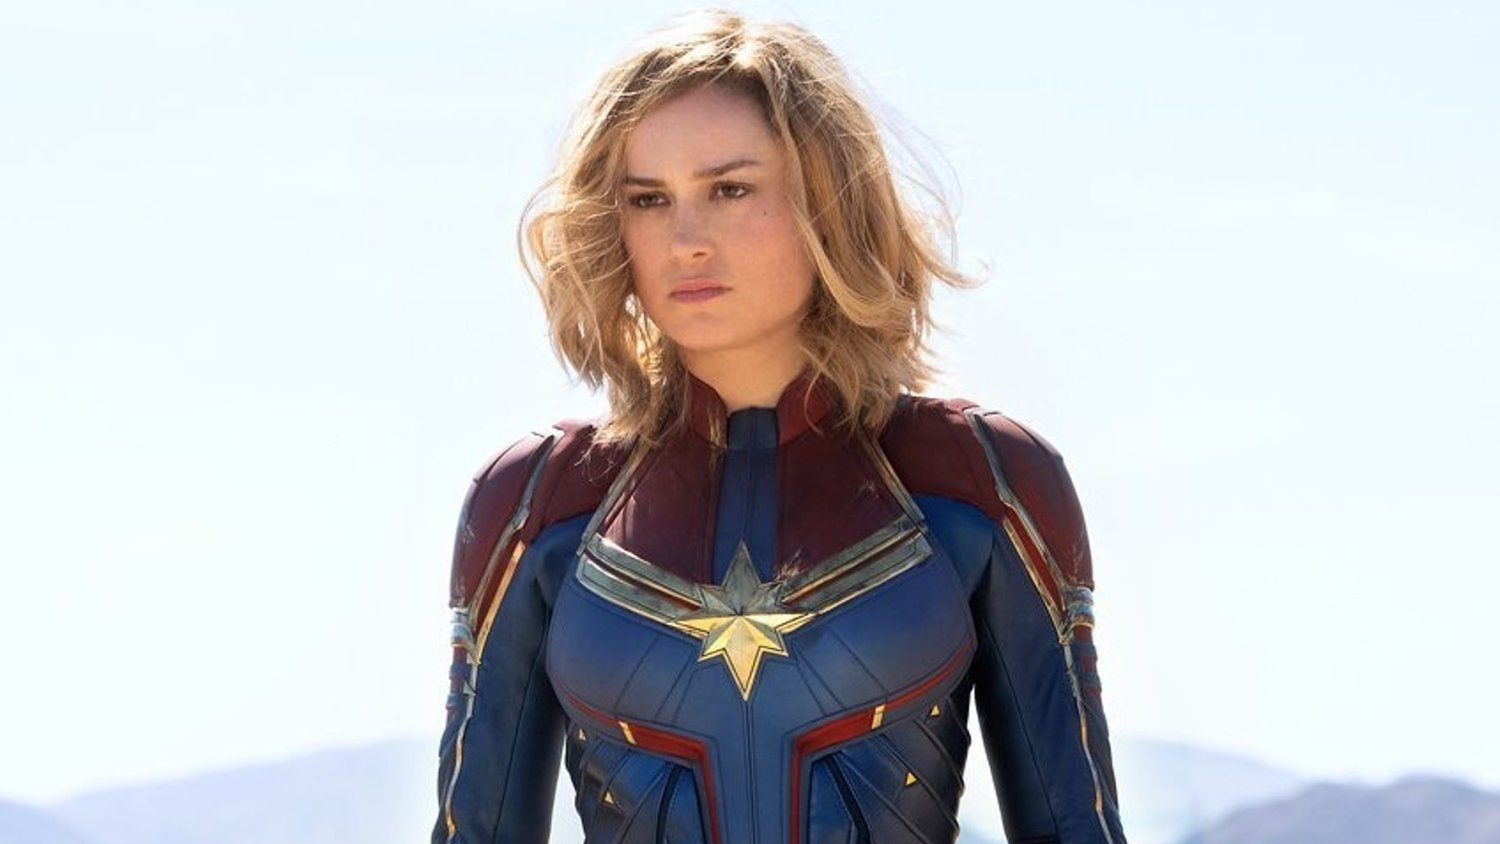 Heres Our First Official Look At Brie Larson As Captain Marvel And